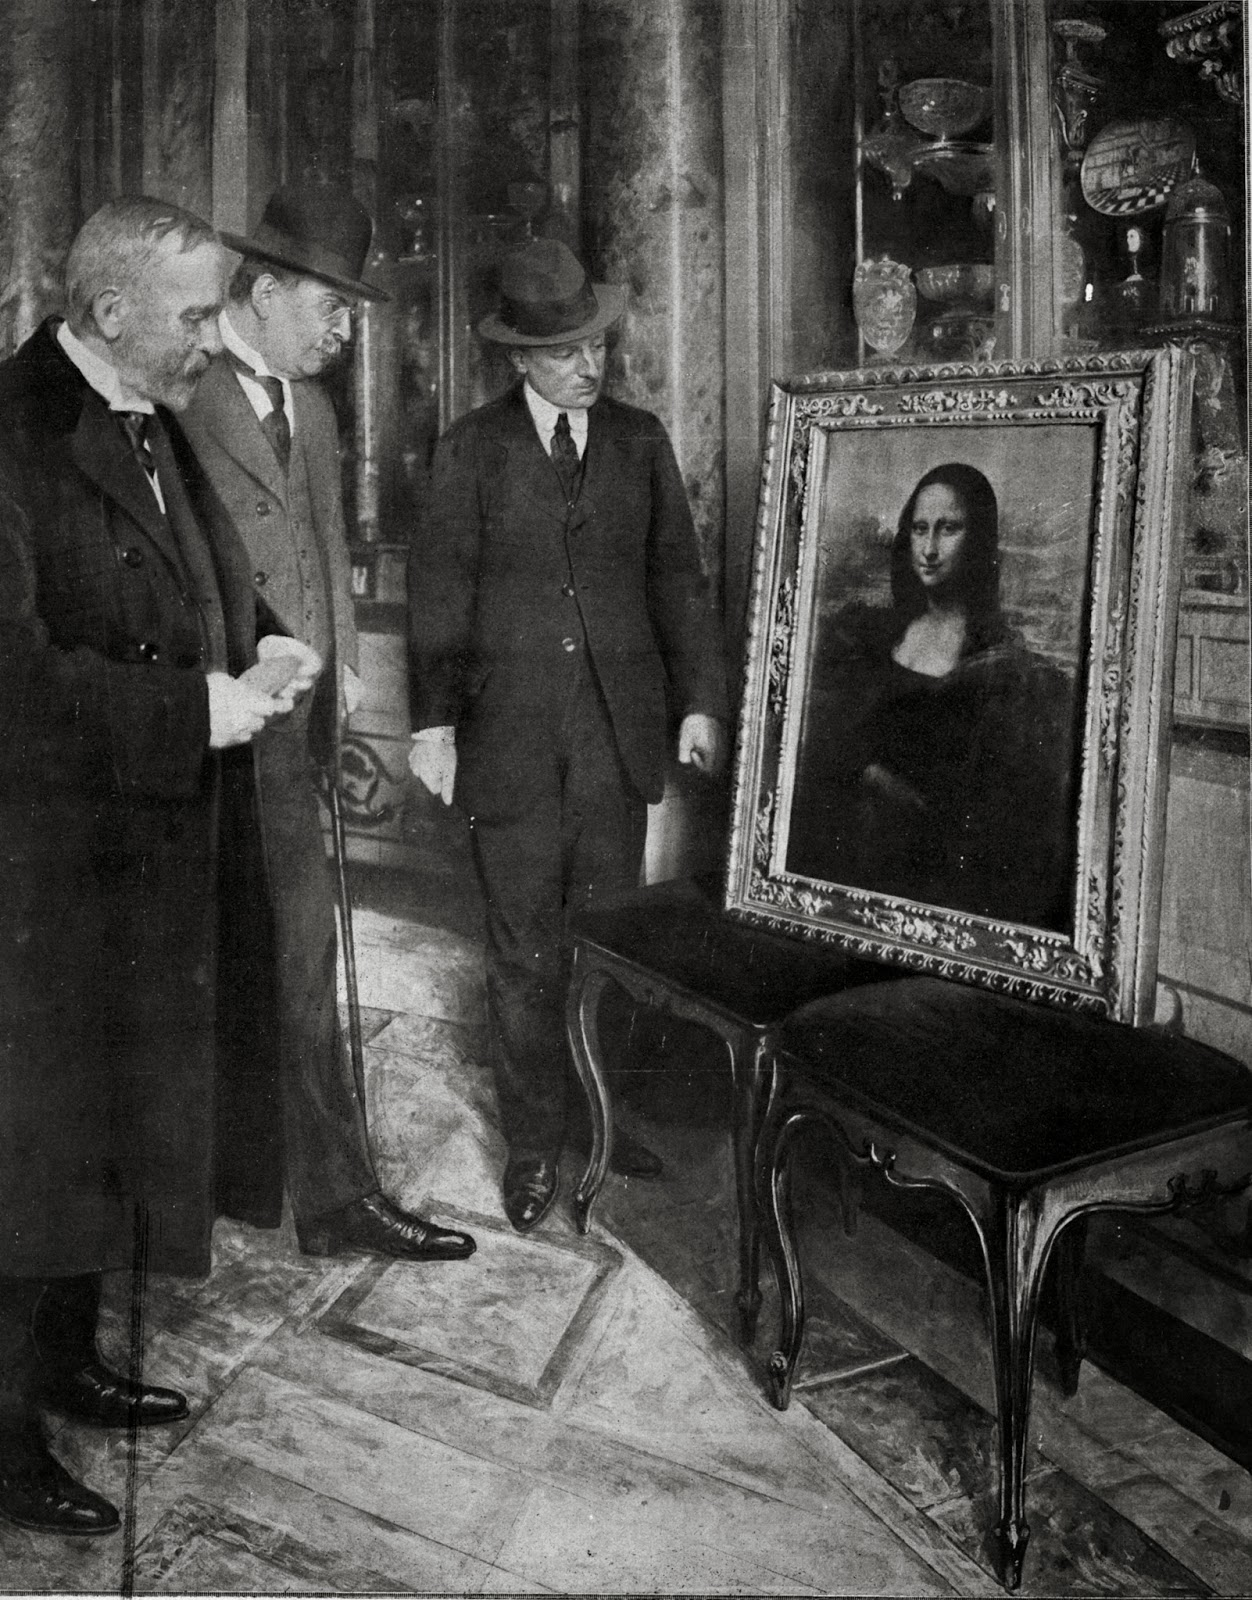 Today in history... stolen Mona Lisa found after two years